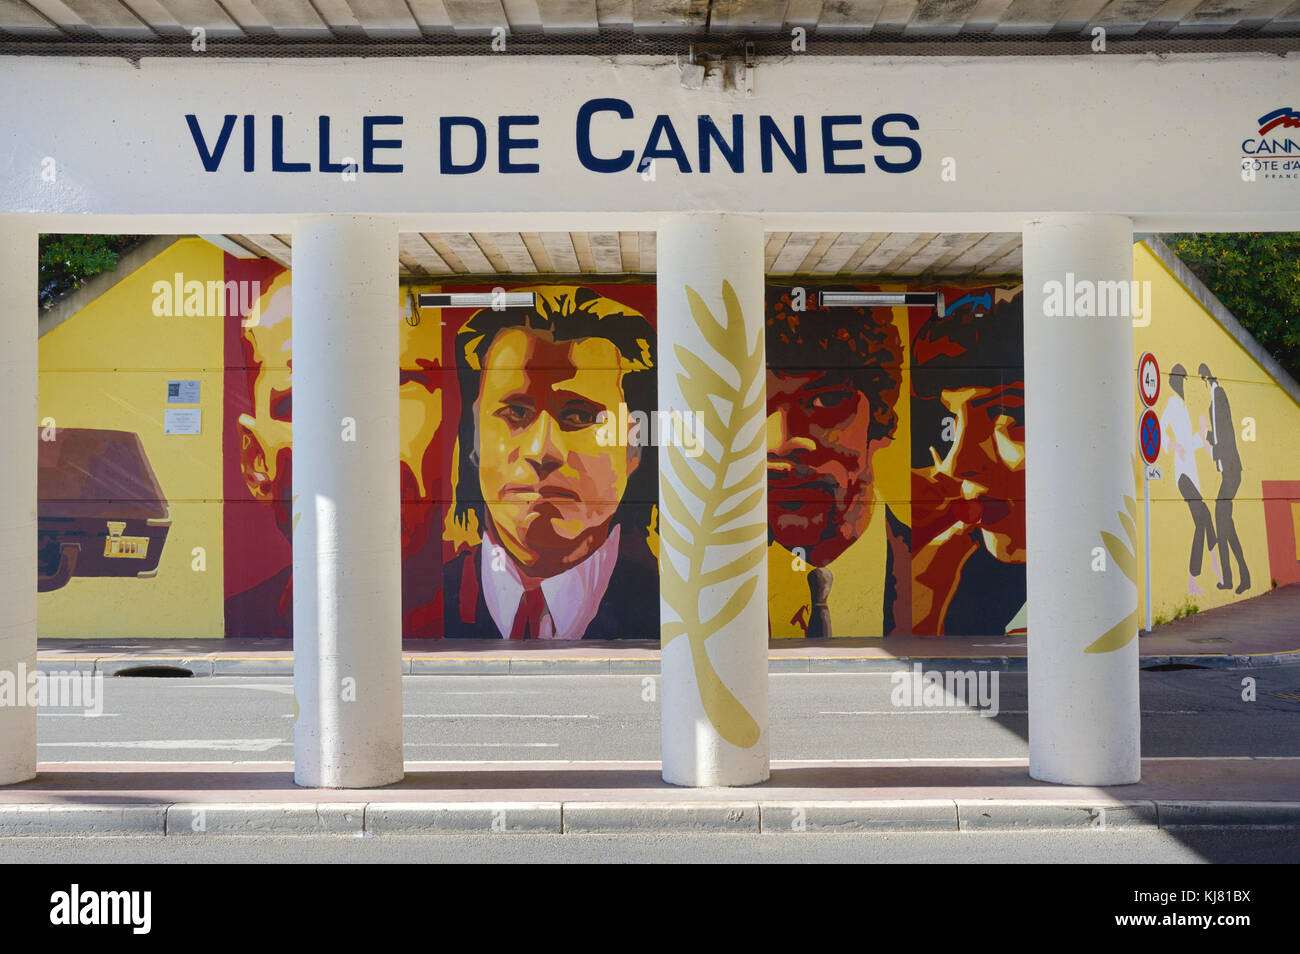 Cannes Underpass with Pulp Fiction Wall Paintings or Mural Celebrating the Cannes Film Festival & Film Industry, - Stock Image